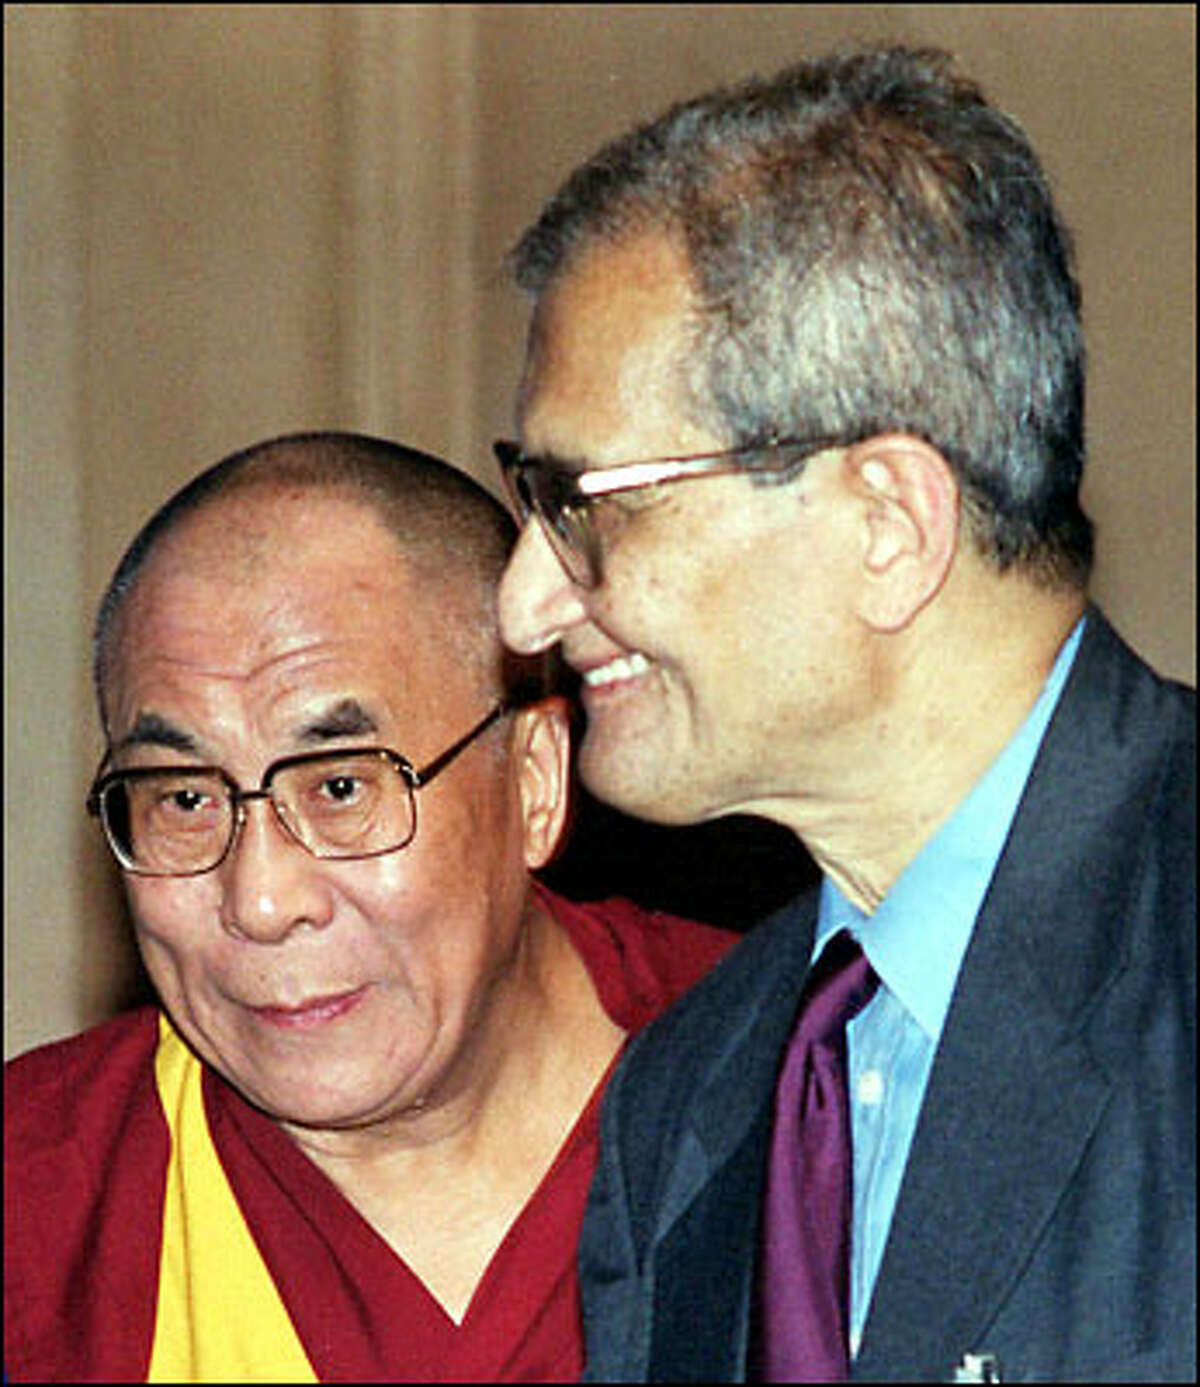 The Dalai Lama, left, winner of the Nobel Peace Prize, stands with Amartya Sen, the Nobel Prize winner for Economics, during the International Press Institute World Conference yesterday in New Delhi, India.